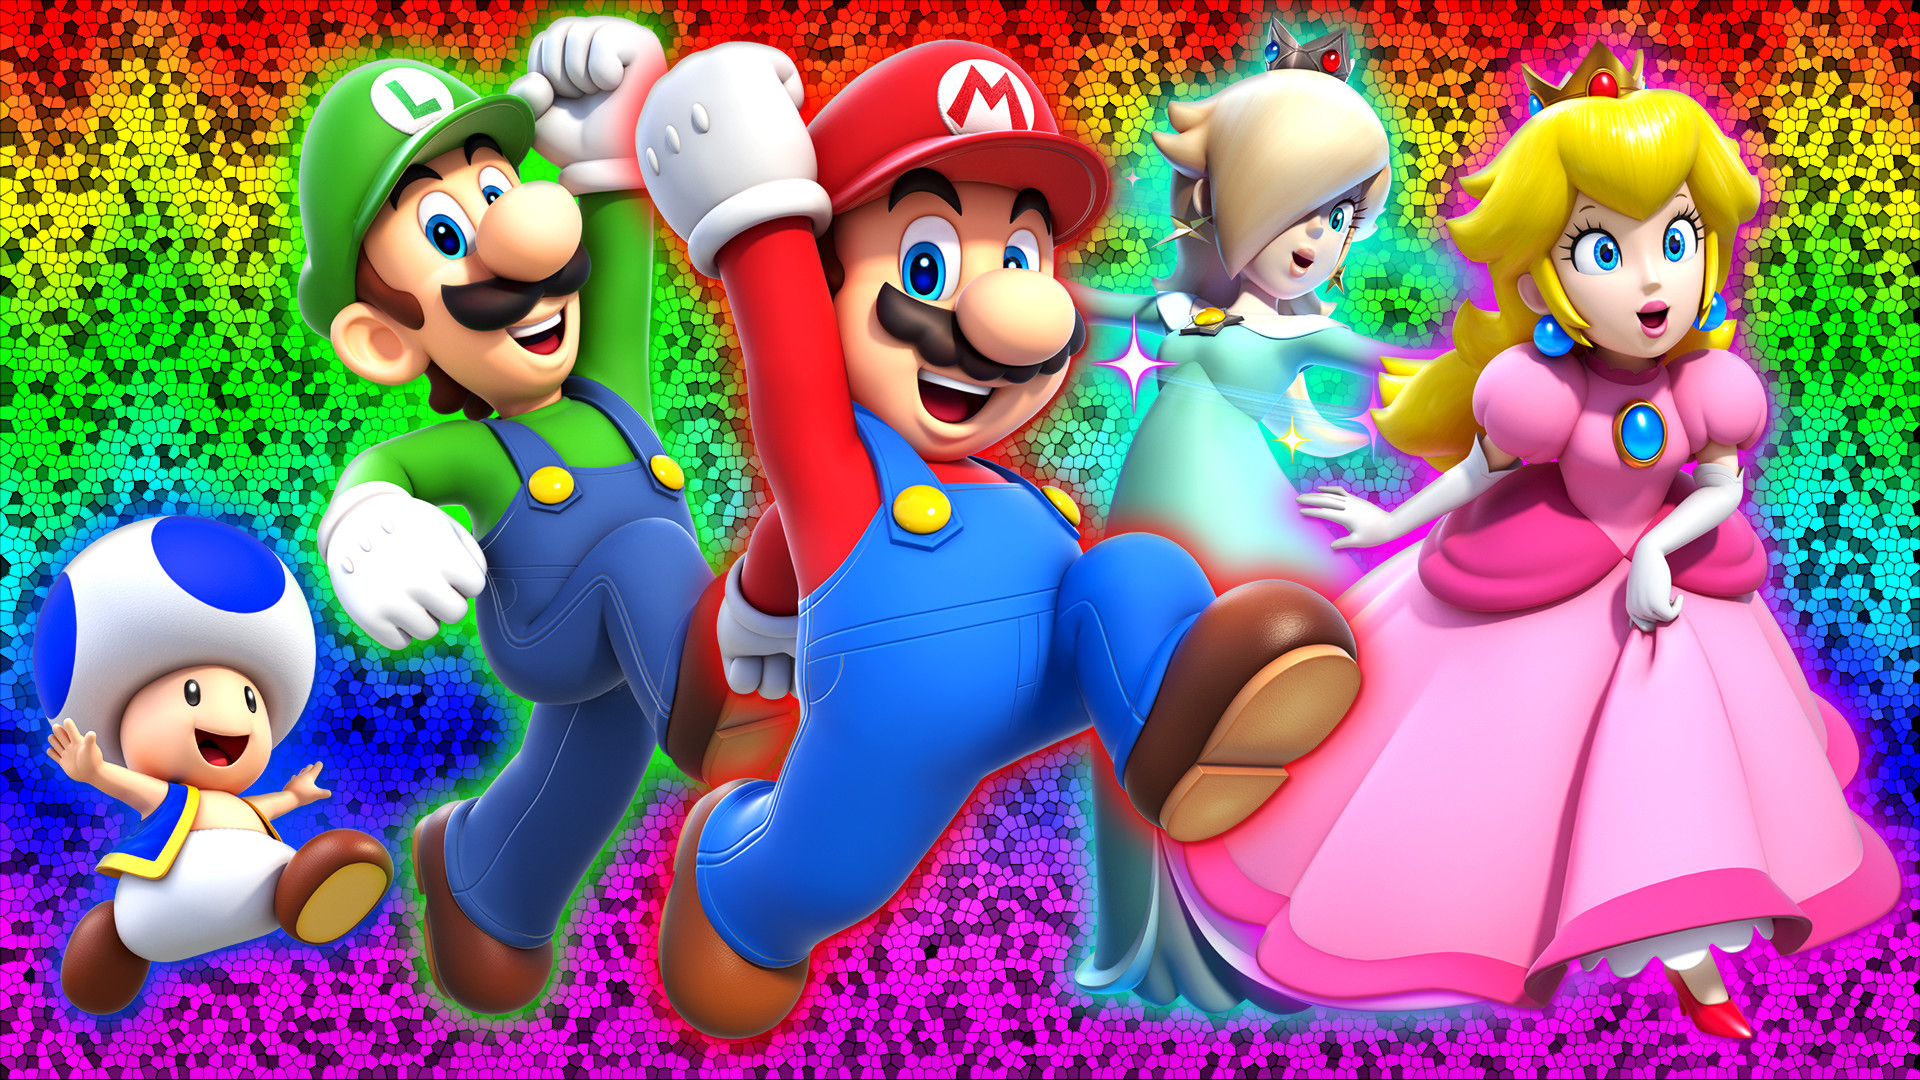 1920x1080 ... Super Mario 3D World Wallpaper by Glench